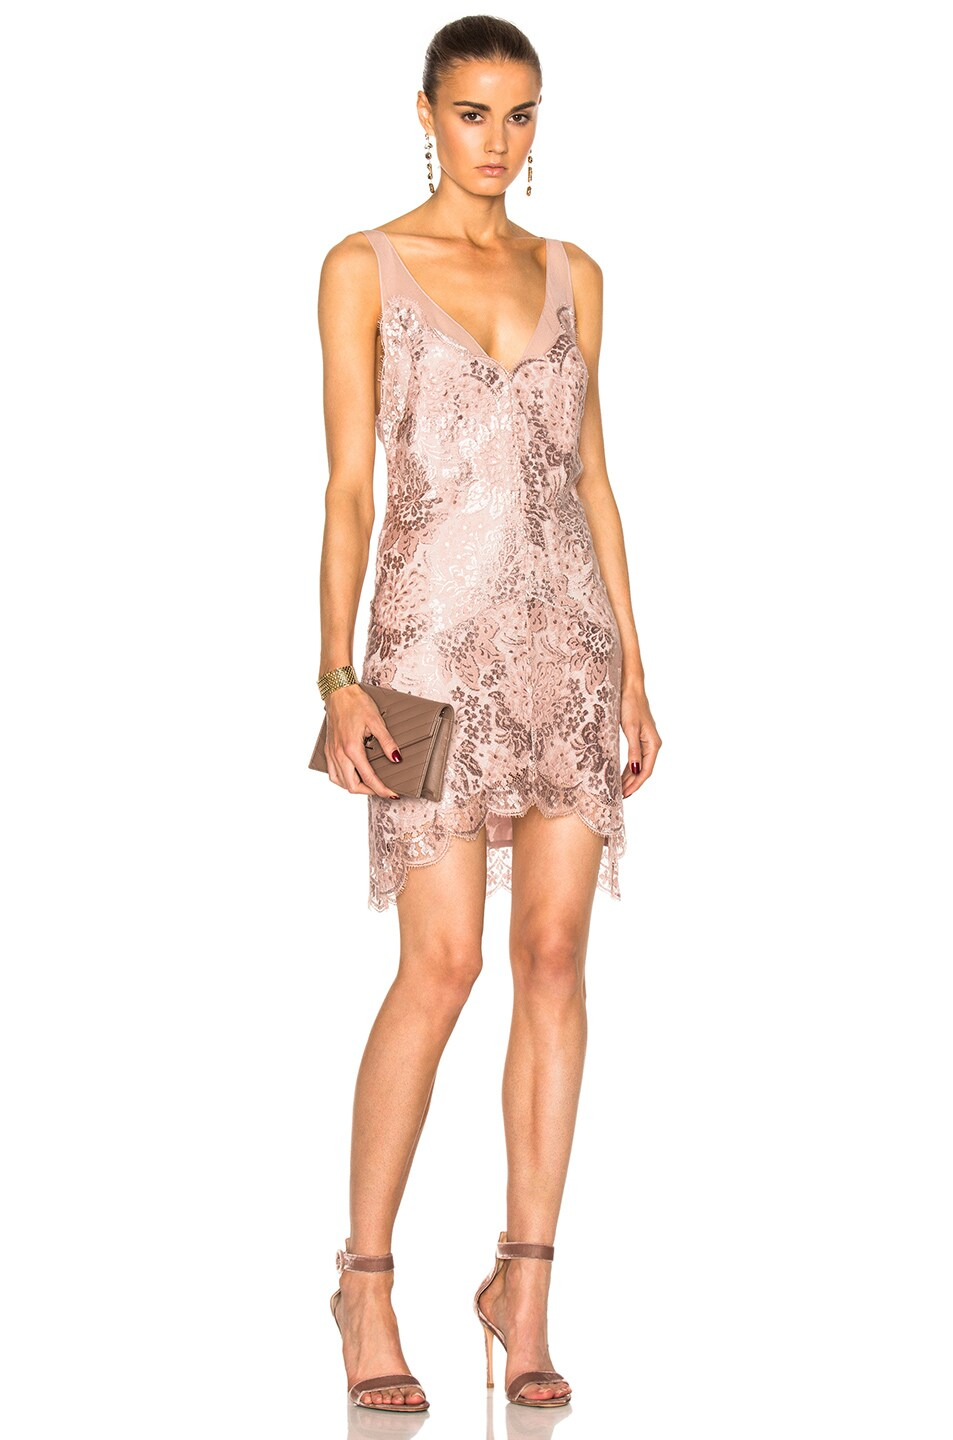 Lover Opium Slip Dress in Pink,Metallics